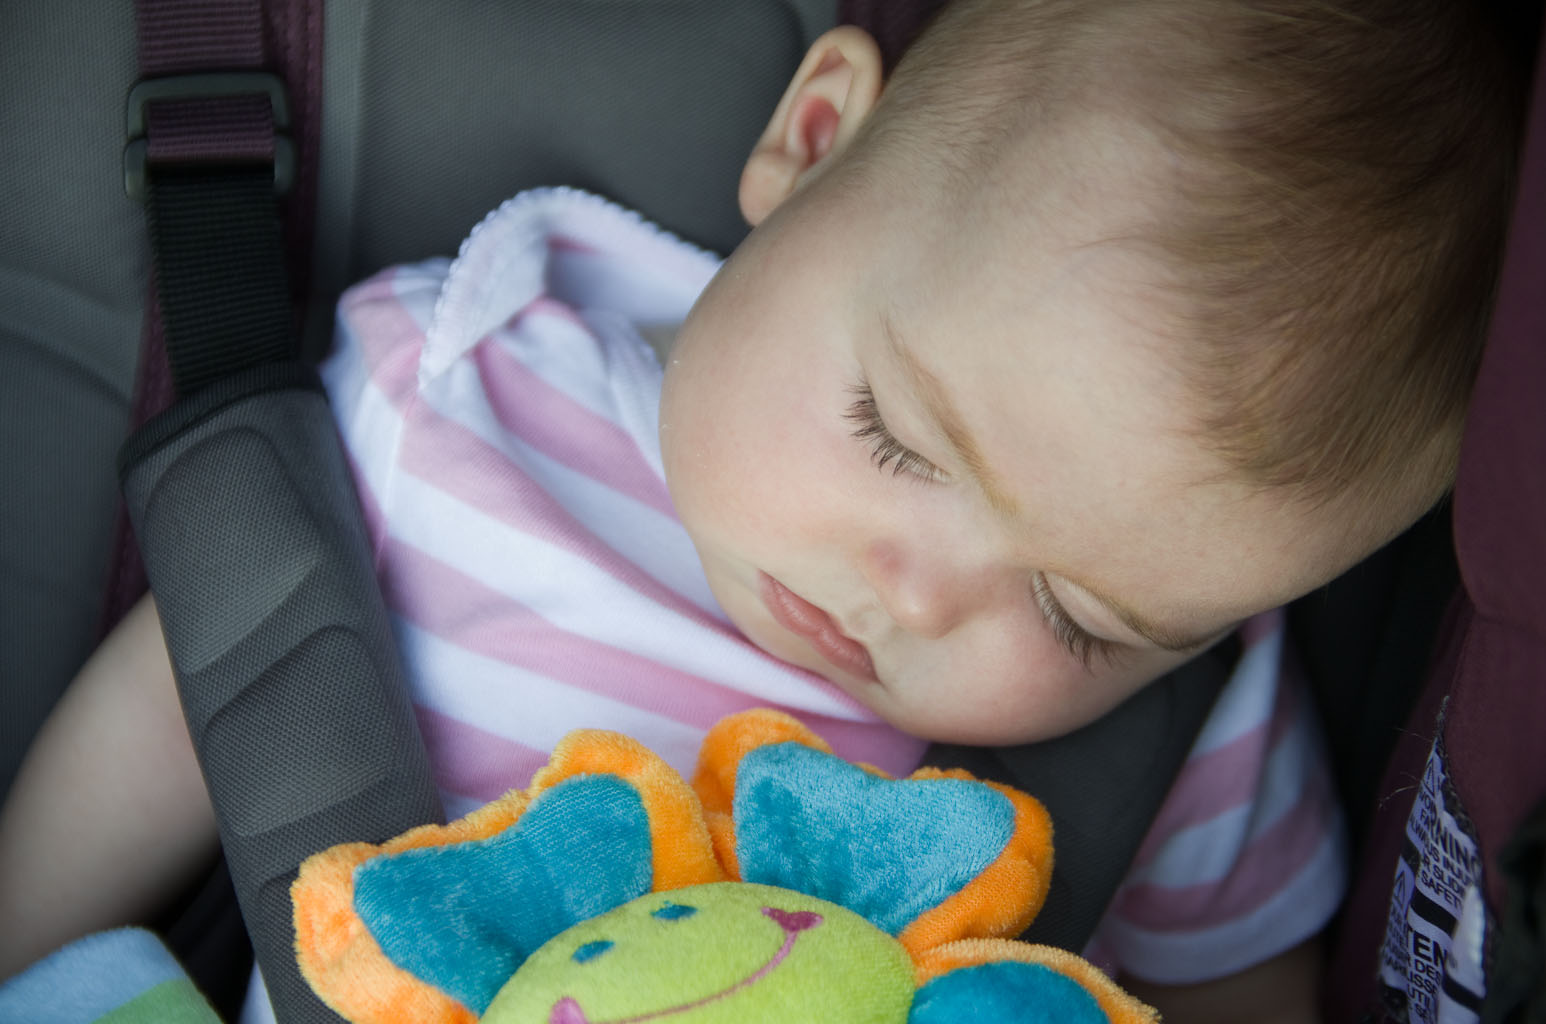 Baby A is napping in her car seat by Elizabeth Powis Fulks.